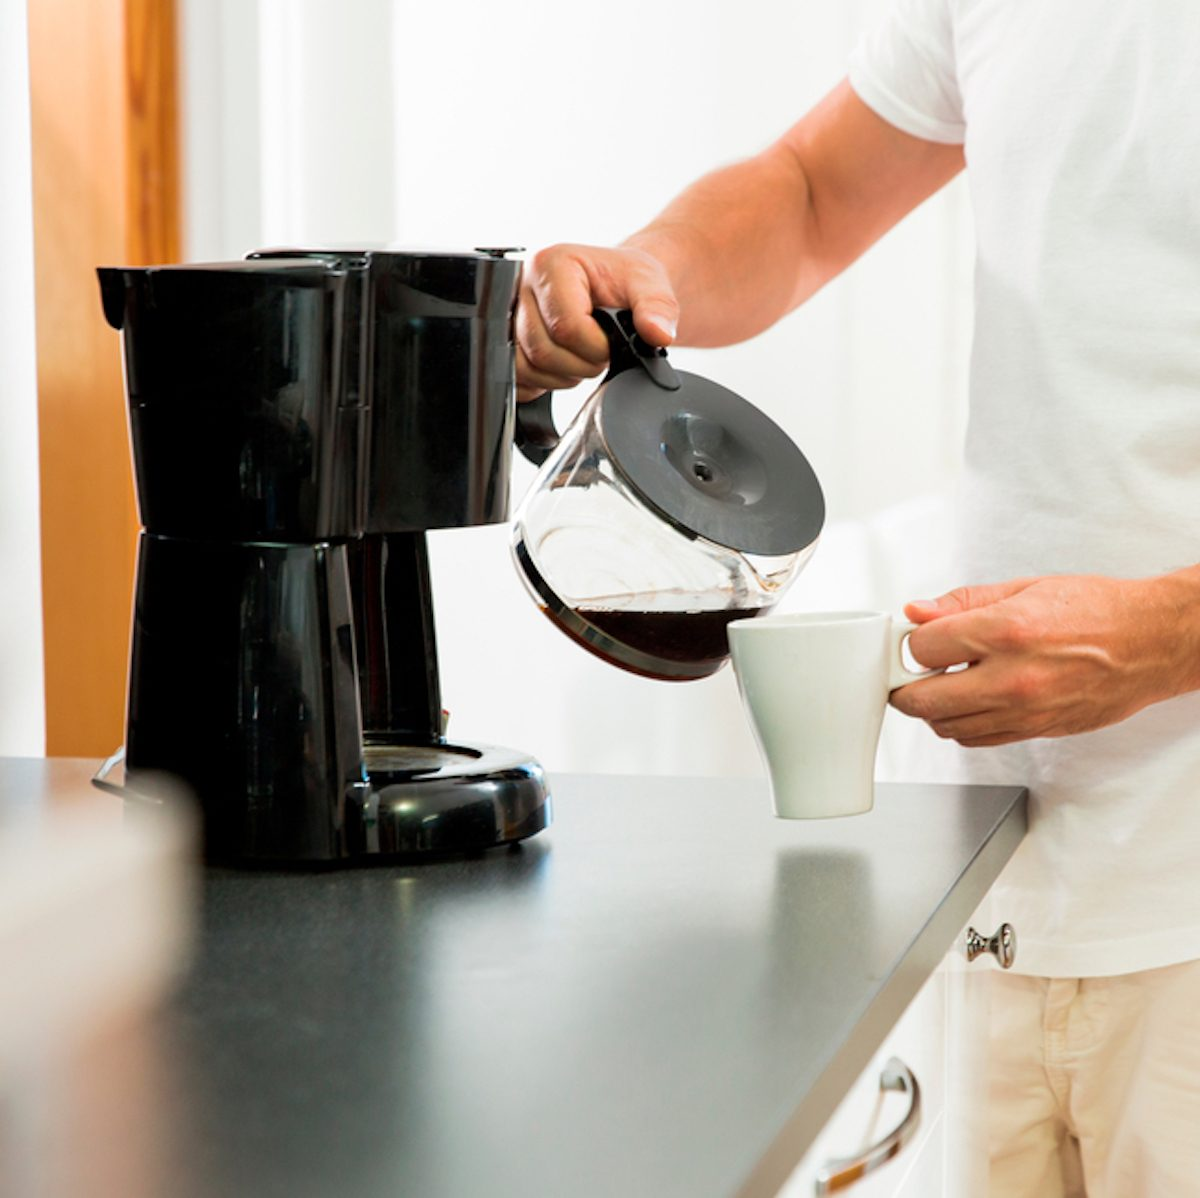 12 Mistakes Everyone Makes When Brewing Coffee | Taste of Home